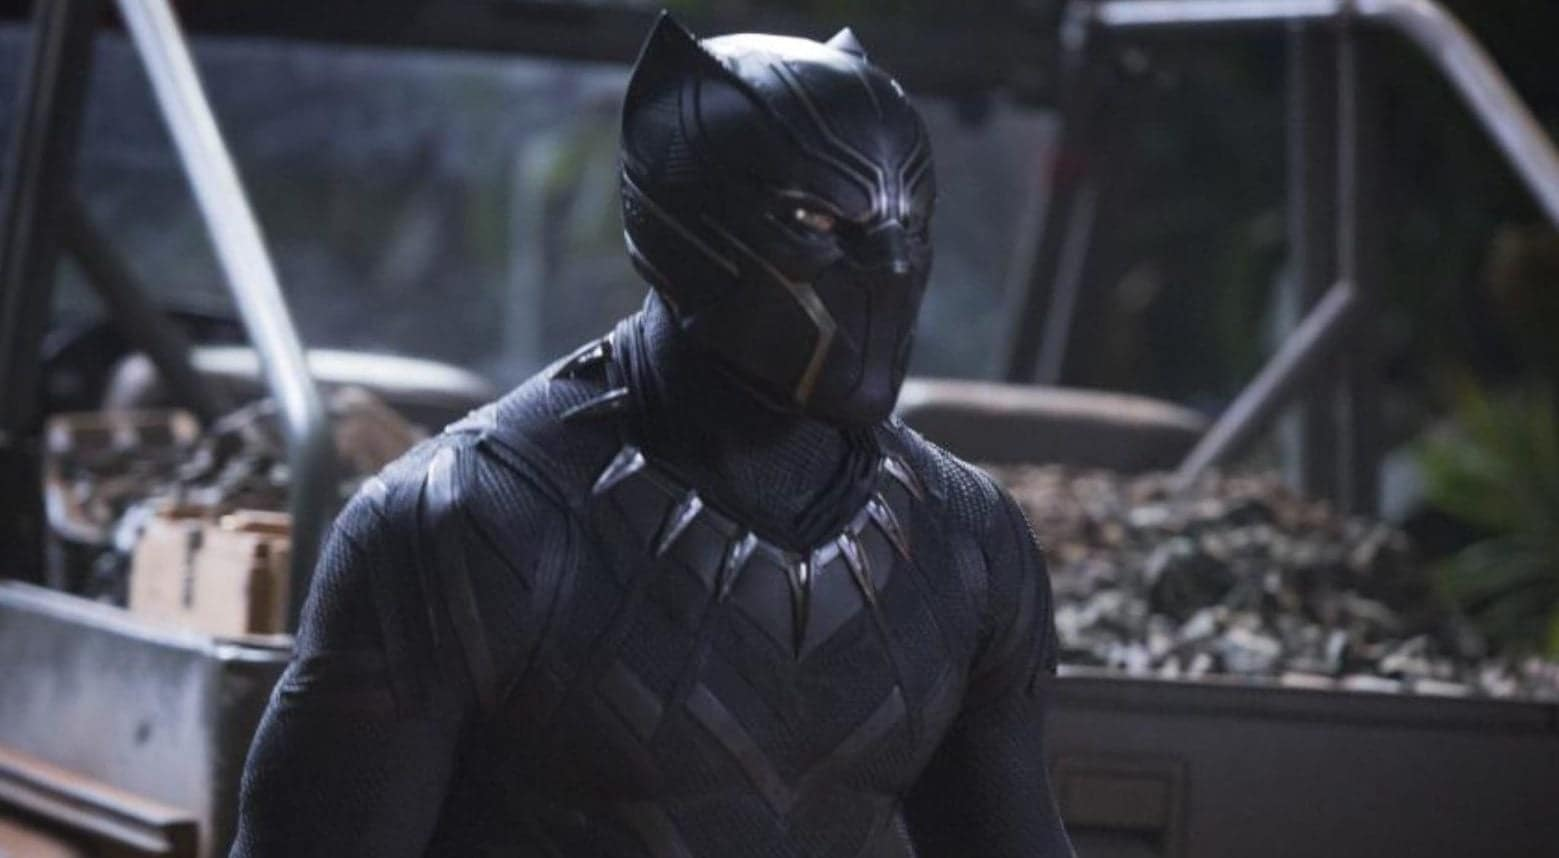 'Black Panther' tops North American box office with $65.7M